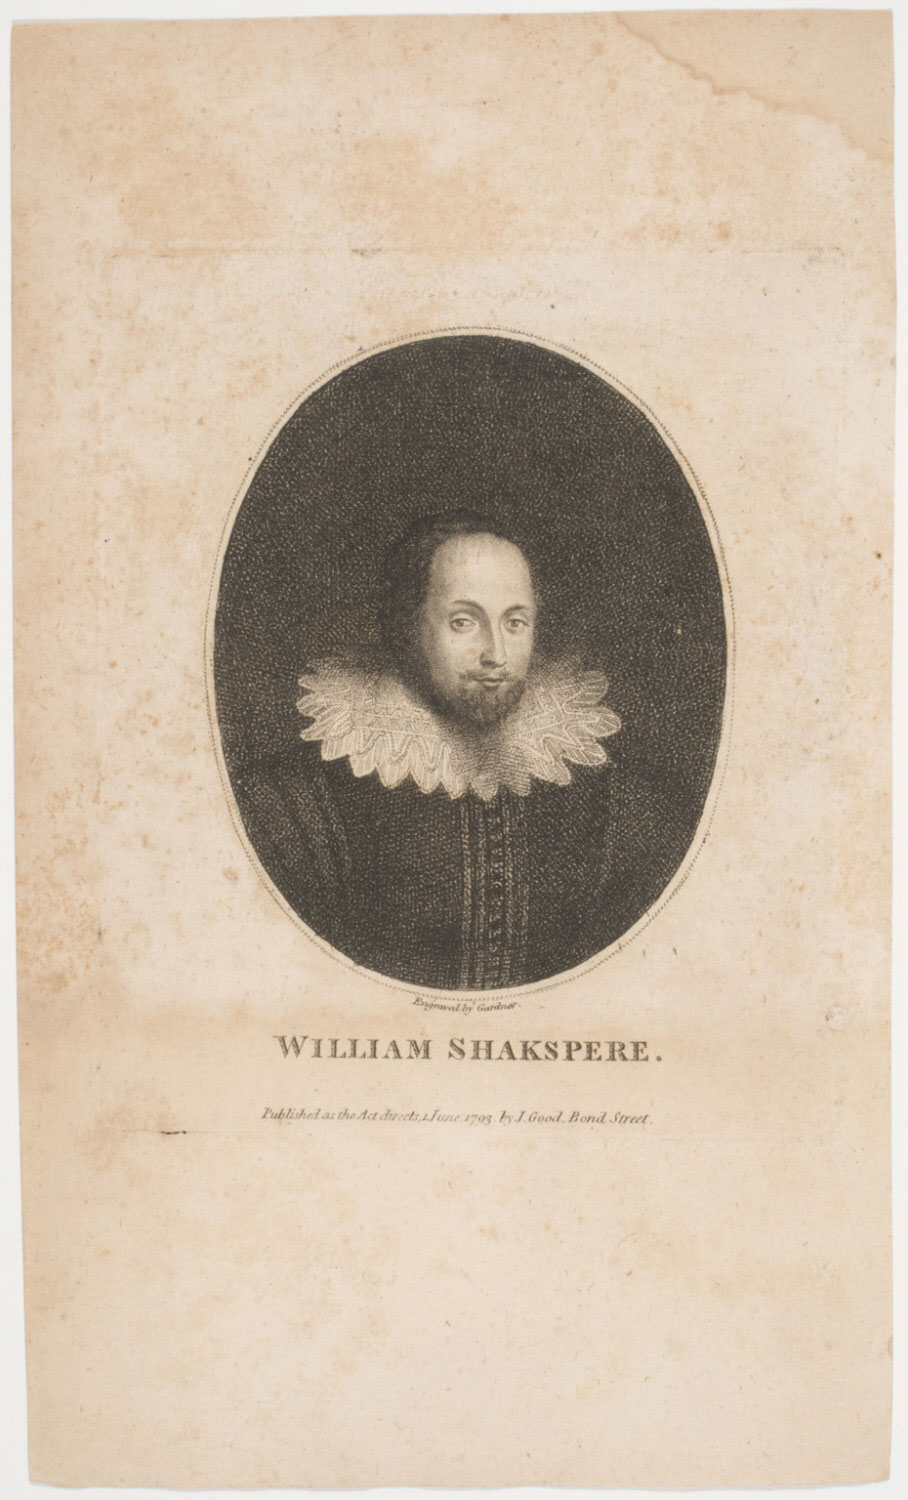 Portrait of William Shakespeare, Poet and Dramatist